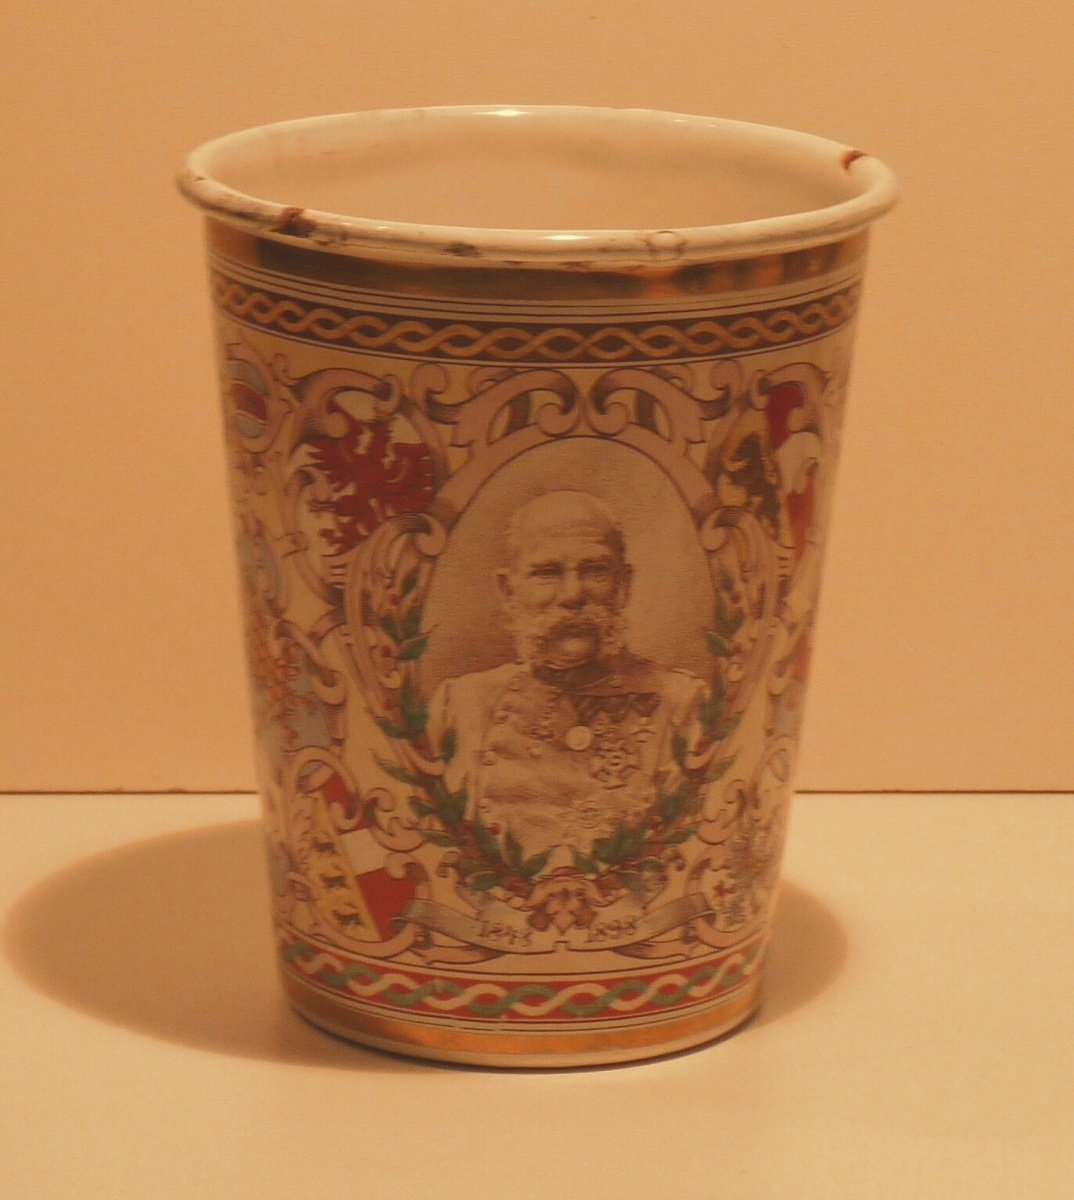 Cup with portrait of Franz Josef in military uniform with many crests